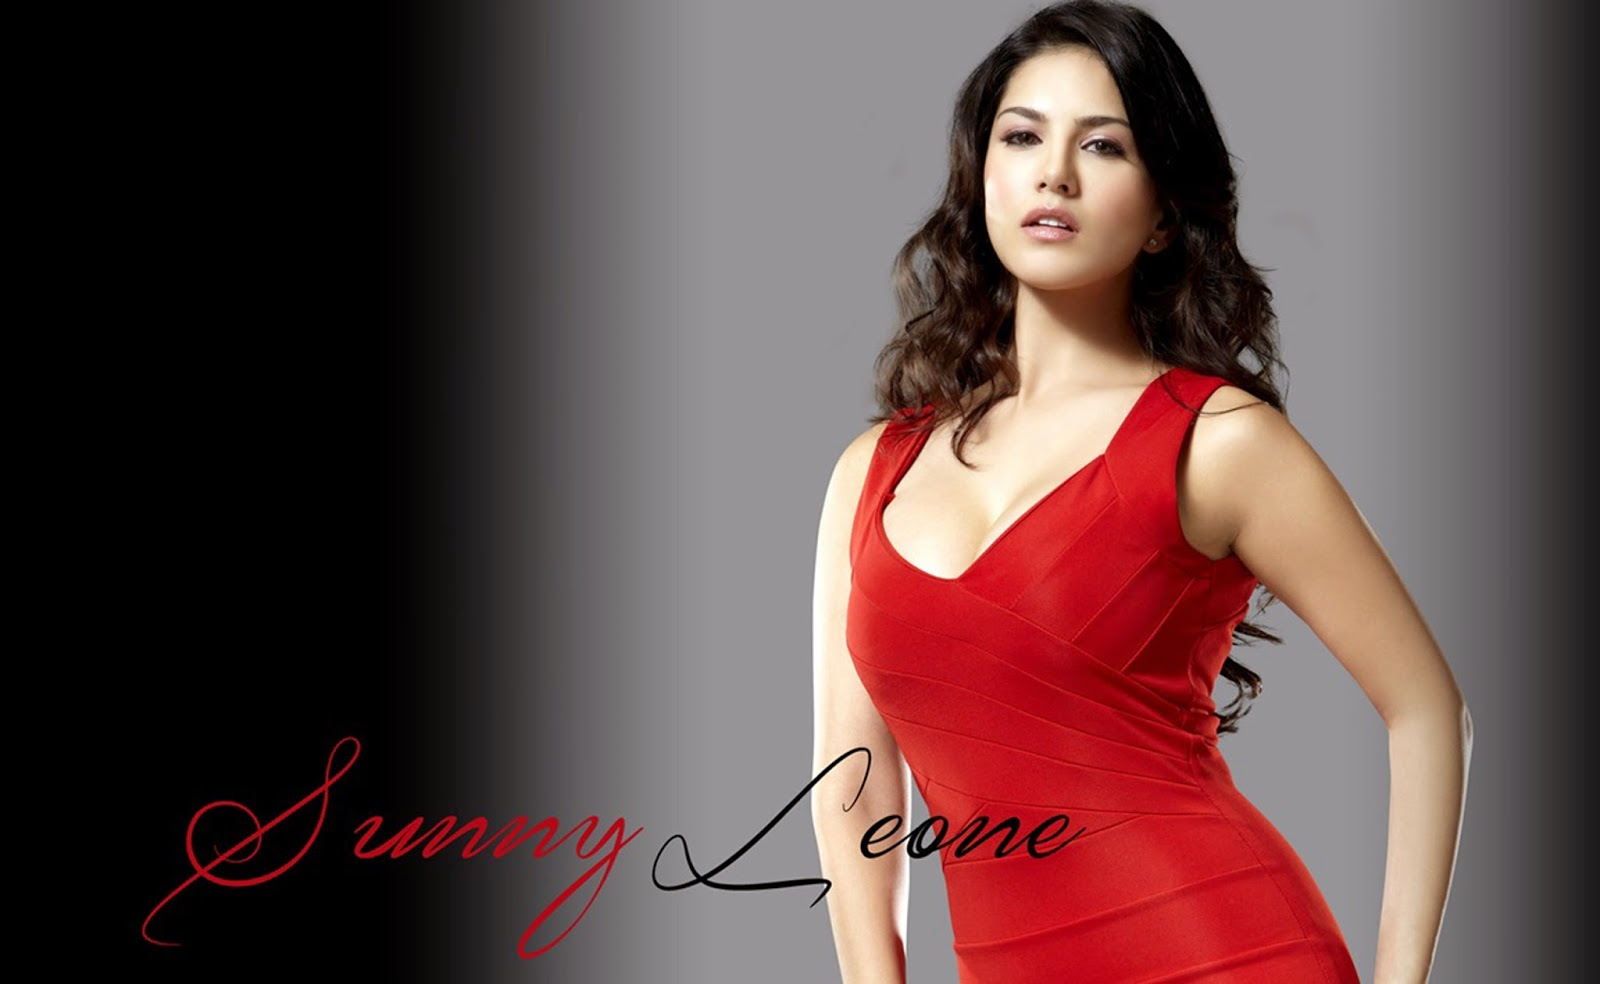 Sunny Leone Sunny Leone Awesome Hot Hd Images 1920X1080